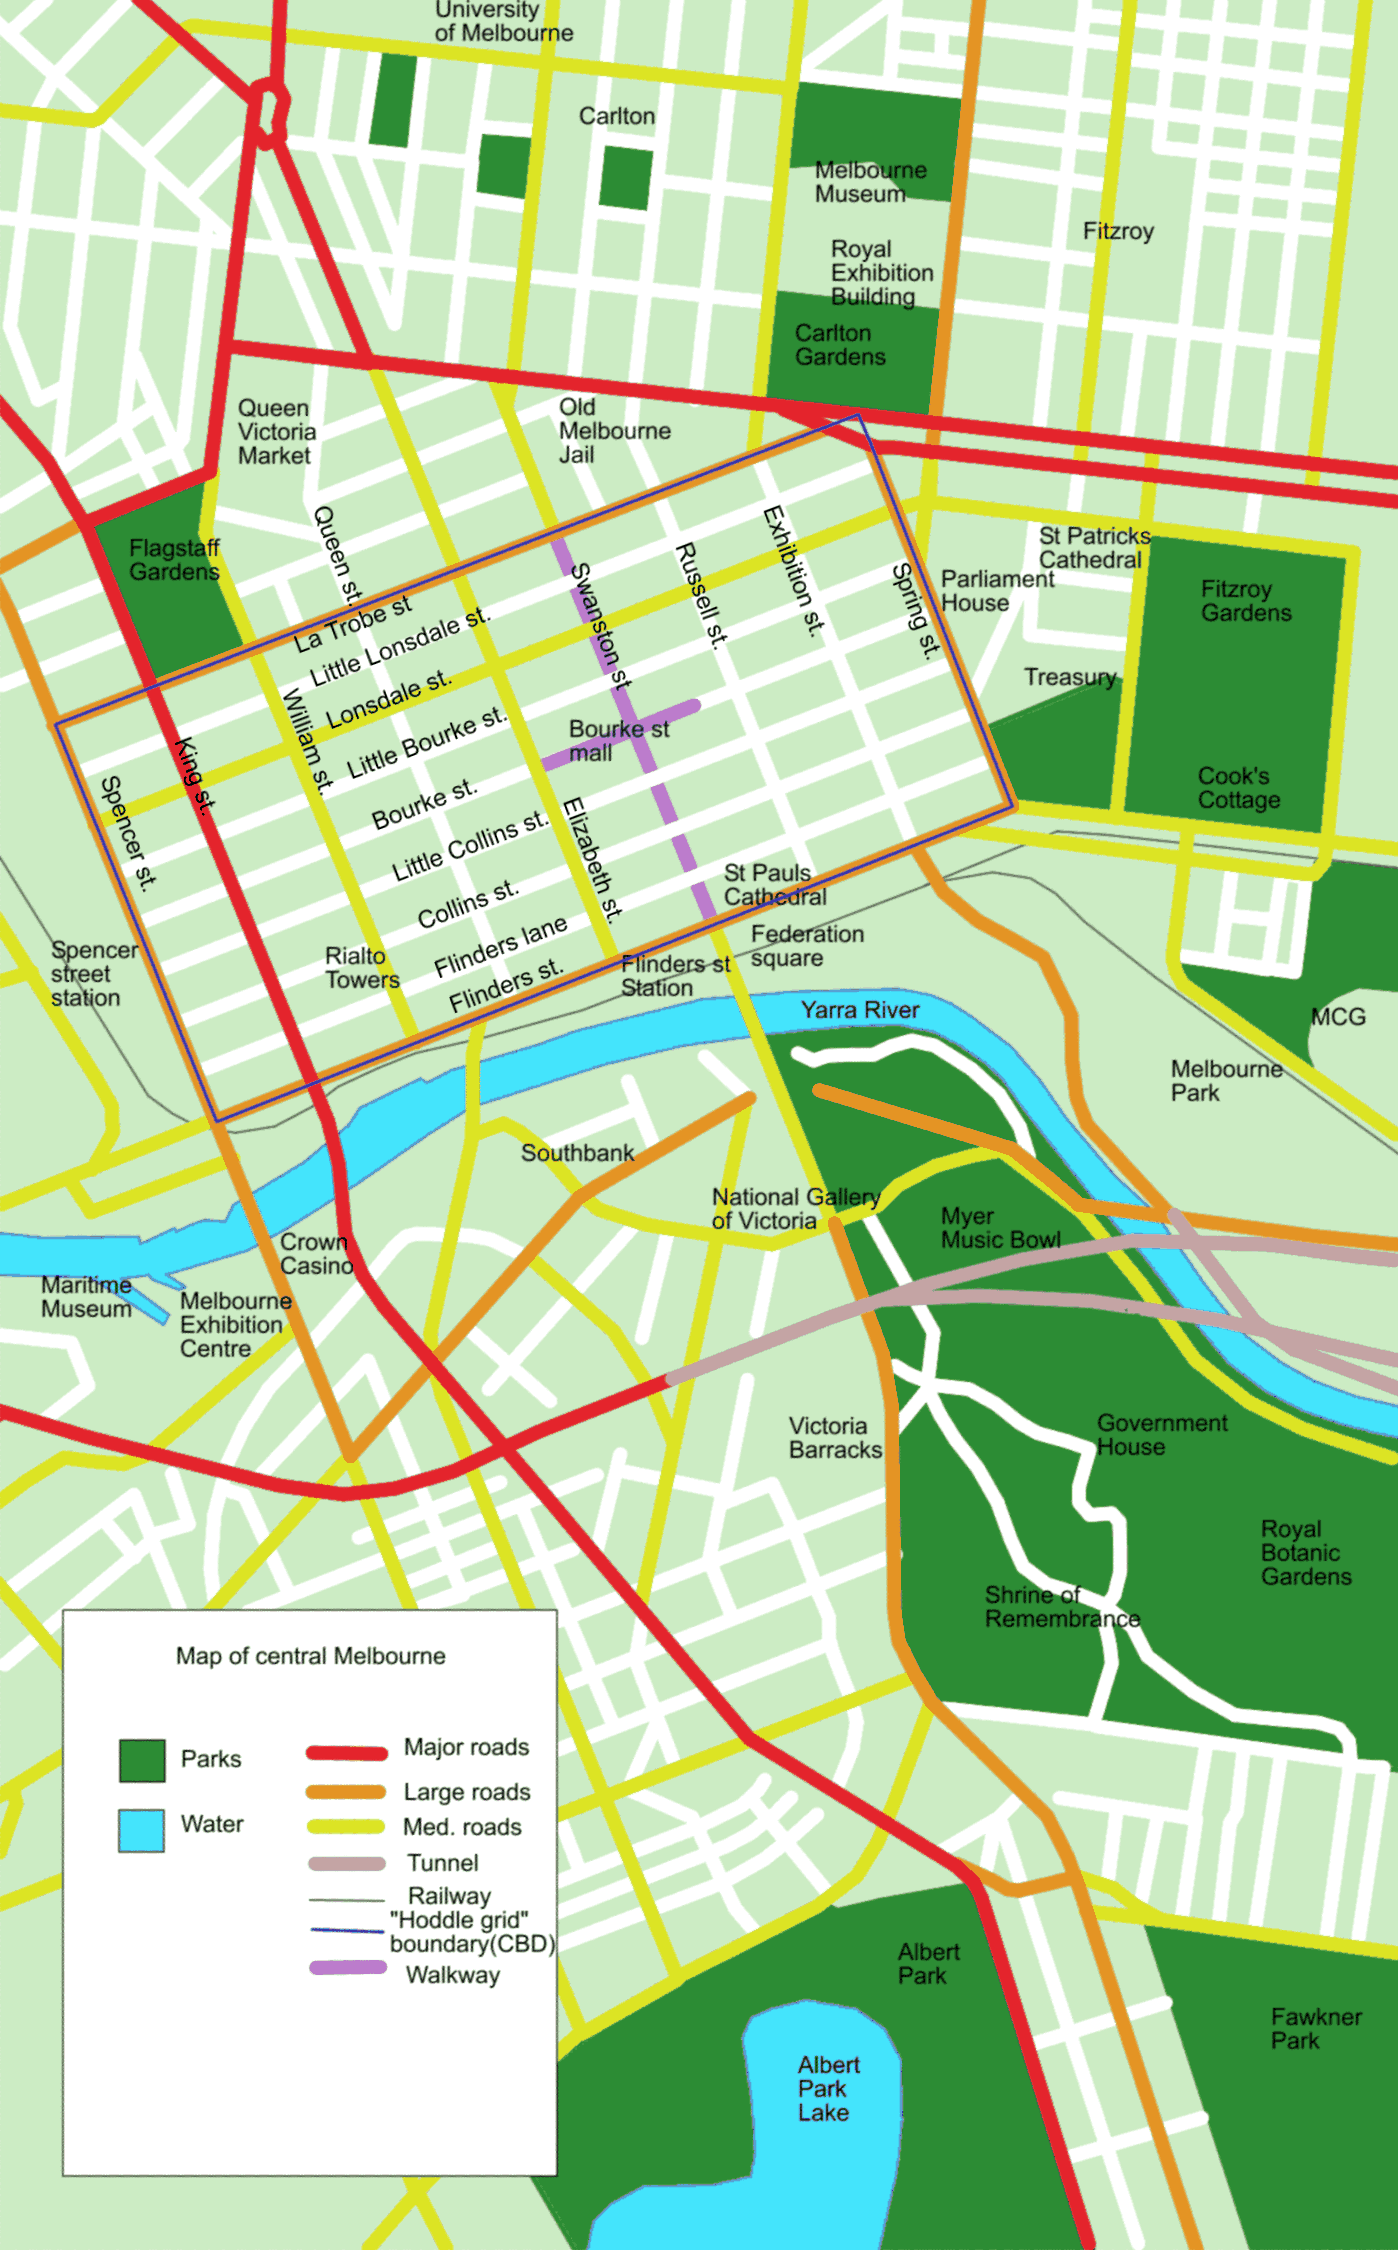 Central Melbourne Australia Tourist Map Melbourne Australia – Melbourne Map For Tourist